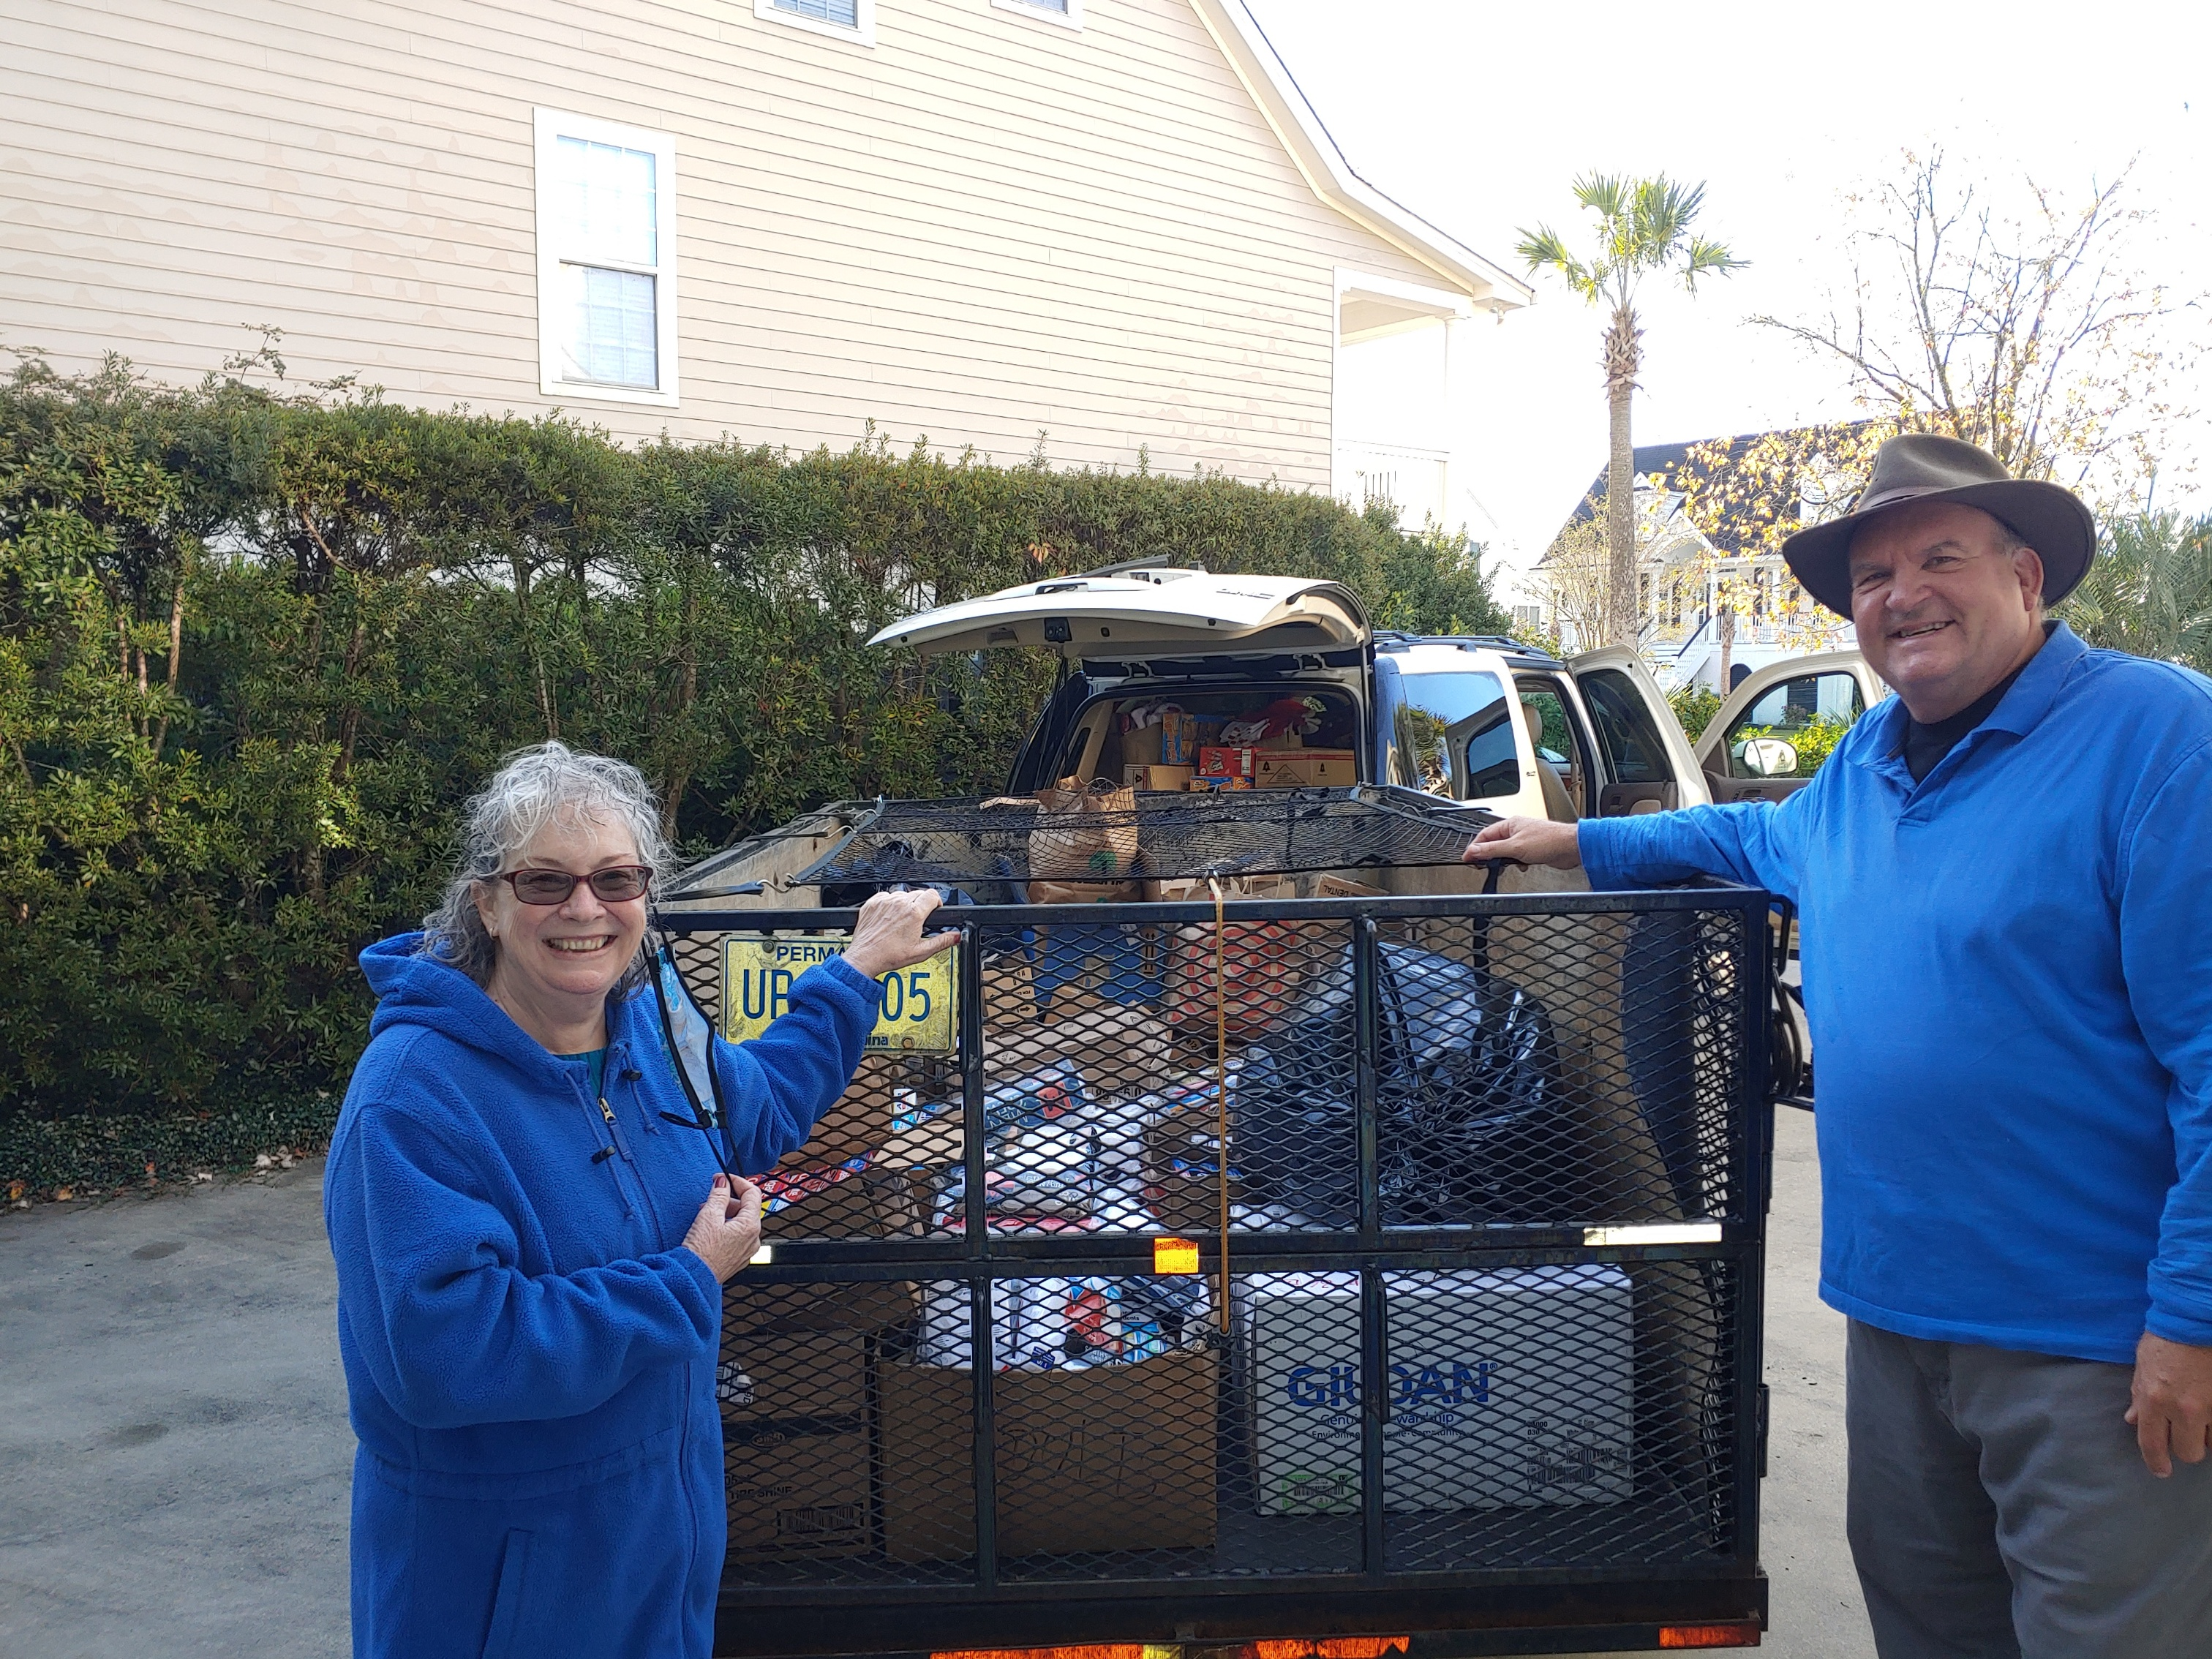 Saint Clare of Assisi parishioners Nancy Bloodgood and Jady Fryml prepare to deliver the first of several loads of Christmas treats to the Lieber and MacDougall Correction Center in Ridgeville. The 1,750 inmates received a heartwarming gift this Christmas, thanks to the efforts of parishioners Fryml, Bloodgood, Kelly Loughery, and Nick Armandi of the parish's prison ministry team that collected over $12,000 from Saint Clare of Assisi members, the Daniel Island Rotary Club, and several other church communities. The funds enabled the team to give stockings filled with socks, t-shirts, toiletries, and other items to the inmates. Visits to the inmates by families and friends of the inmates were halted in February due to the pandemic, contributing to higher tensions within the prison communities. These small gifts mean a great deal to the recipients who realize that somebody on the outside is thinking about them. The prison ministry team will also purchase a video projector for the MacDougall chapel.